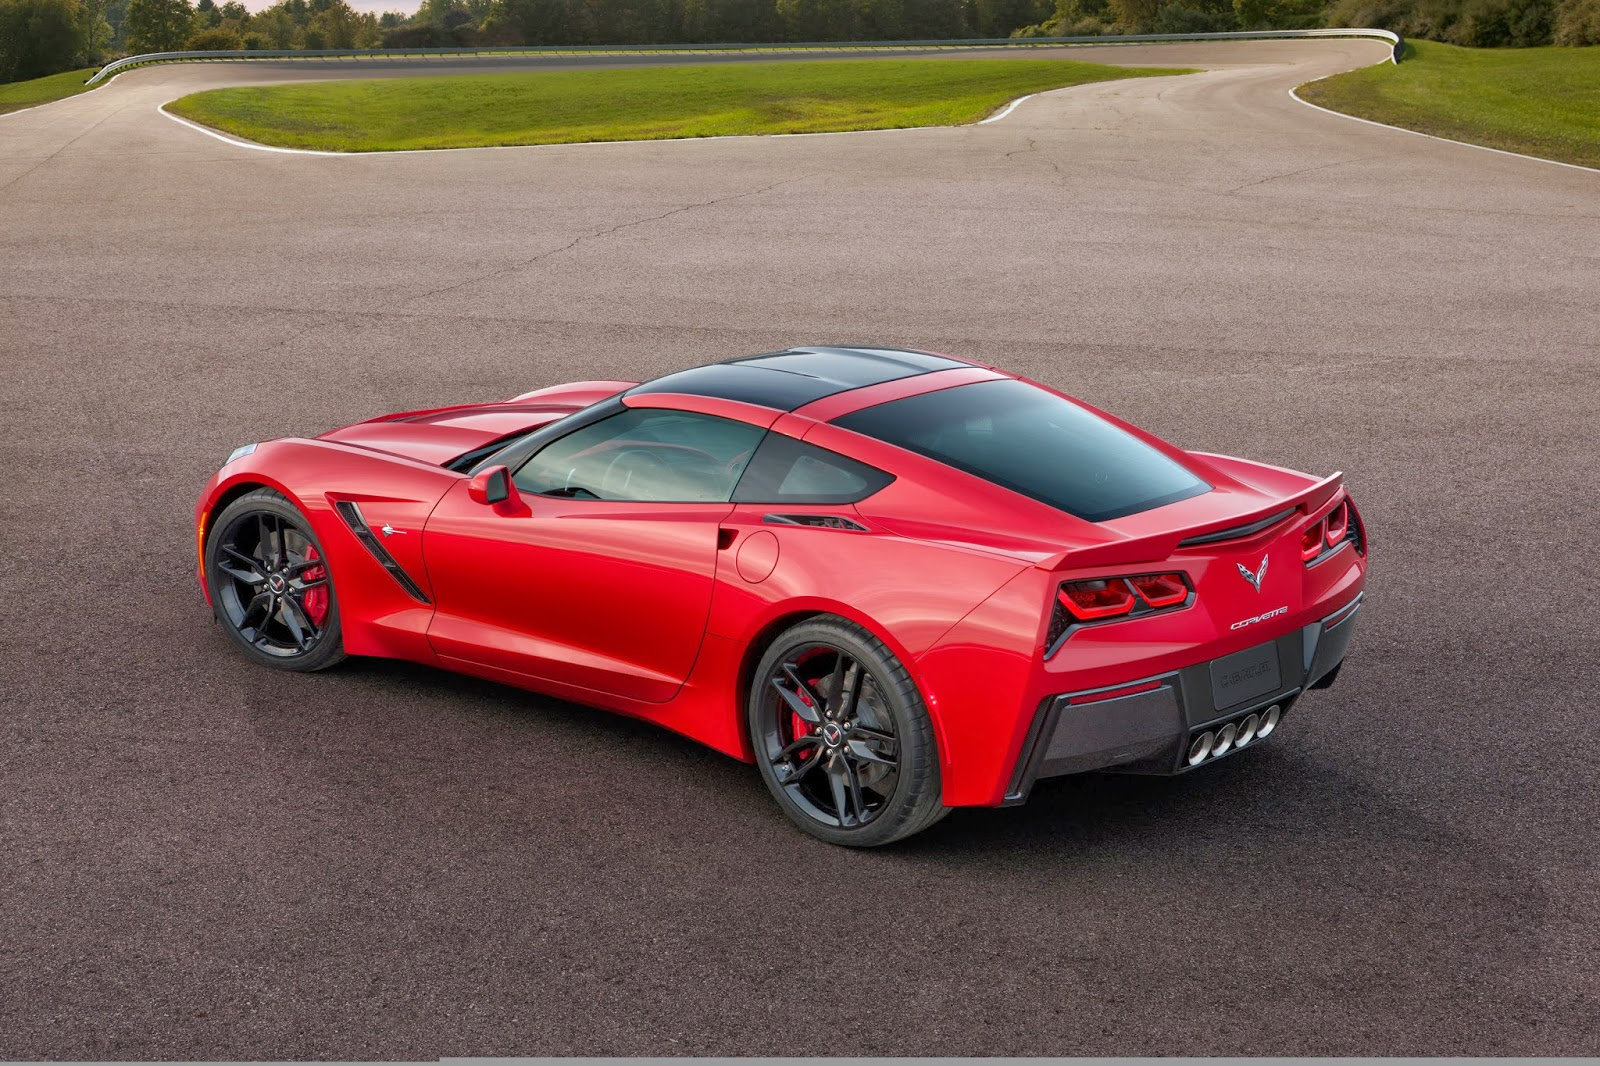 Delightful 2014 Sports Cars,2014 Sports Cars Under 30k,2014 Sports Cars Under 40k